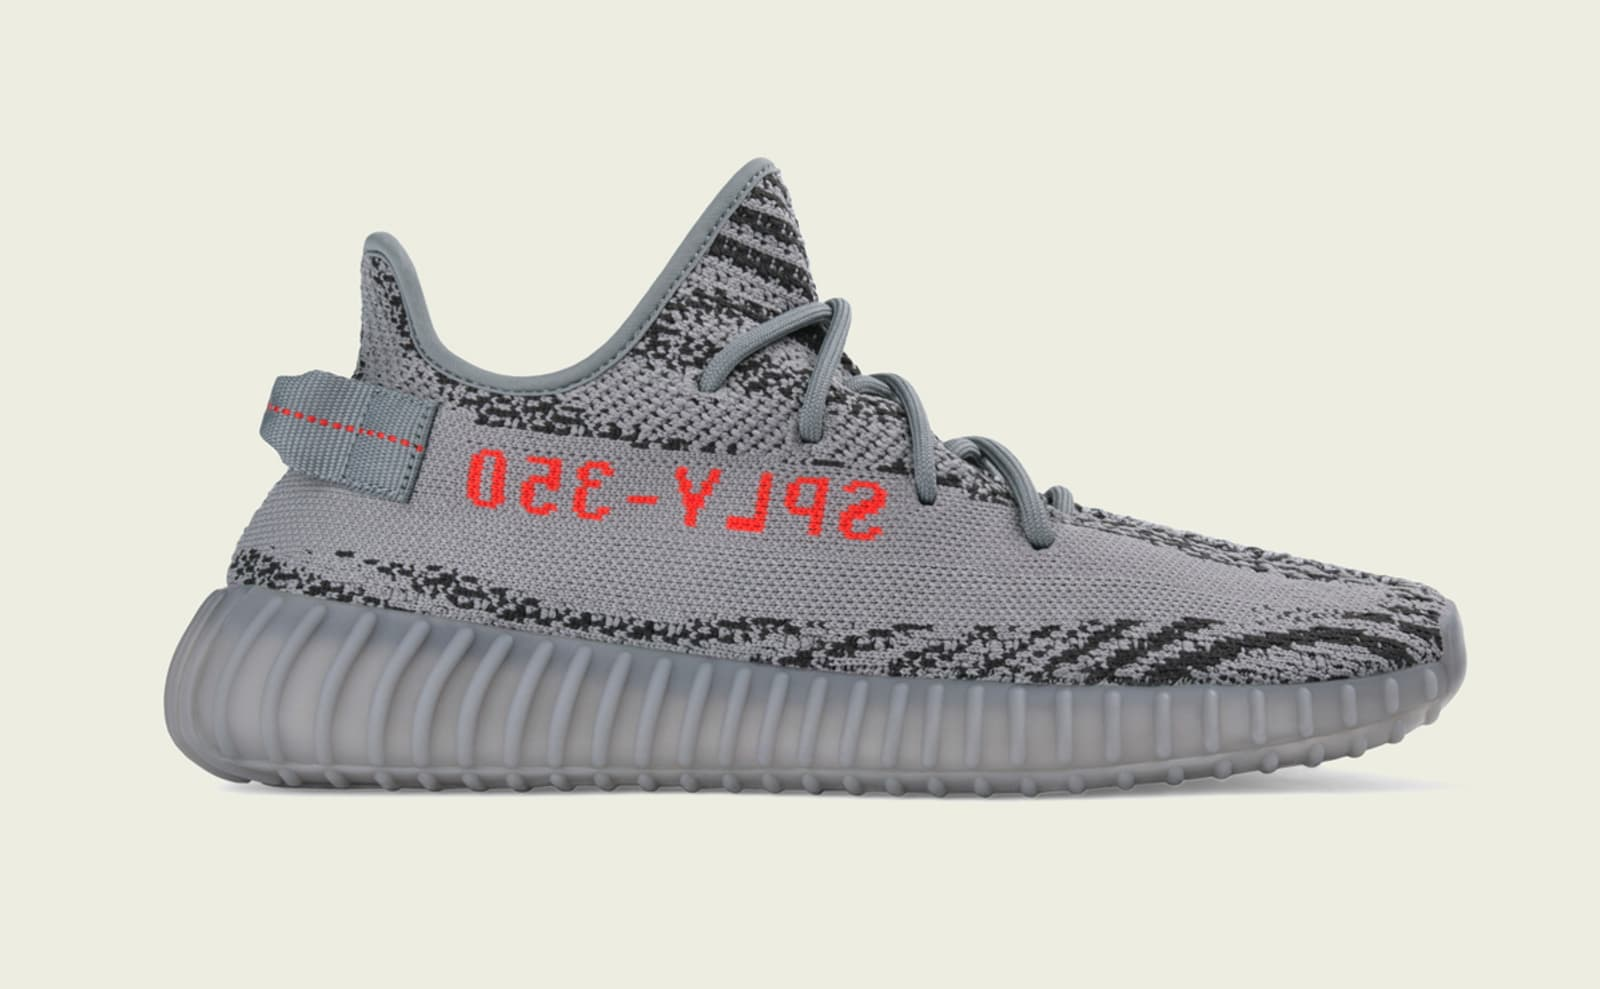 Yeezy Sneaker Price Guide | Sole Collector